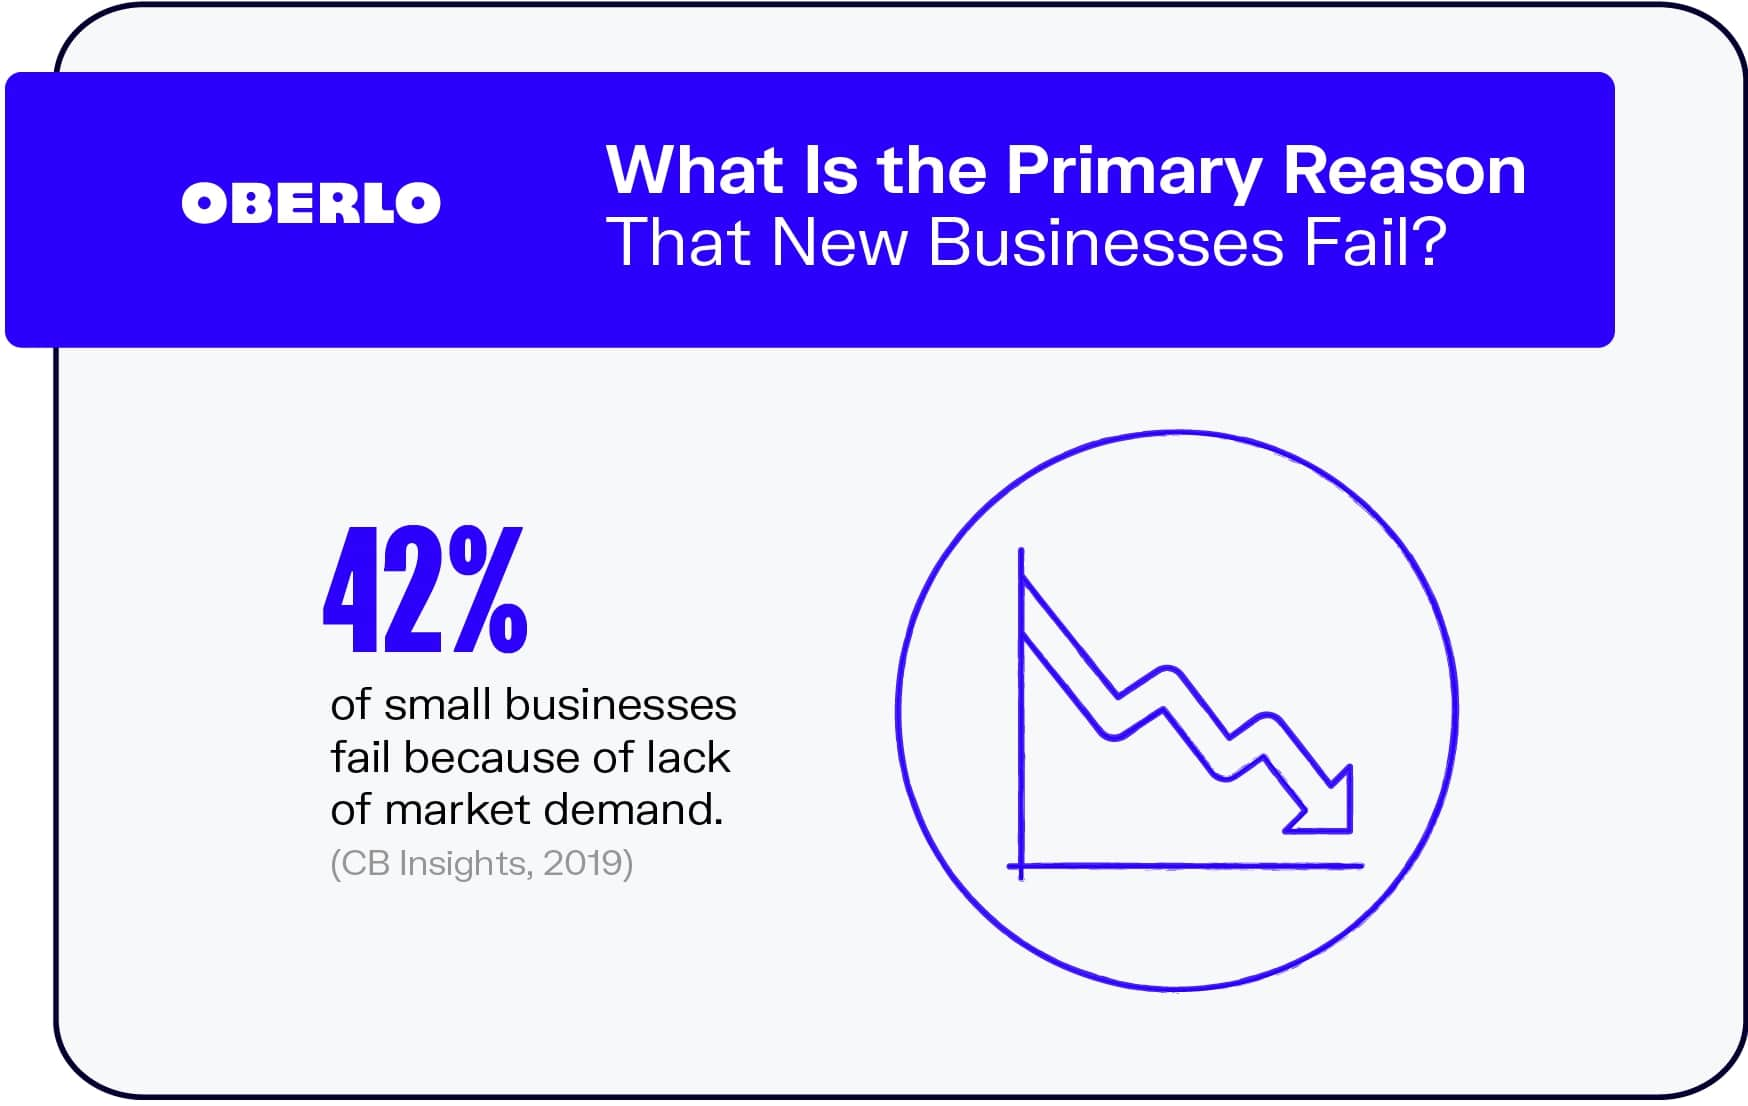 What Is the Primary Reason That New Businesses Fail?